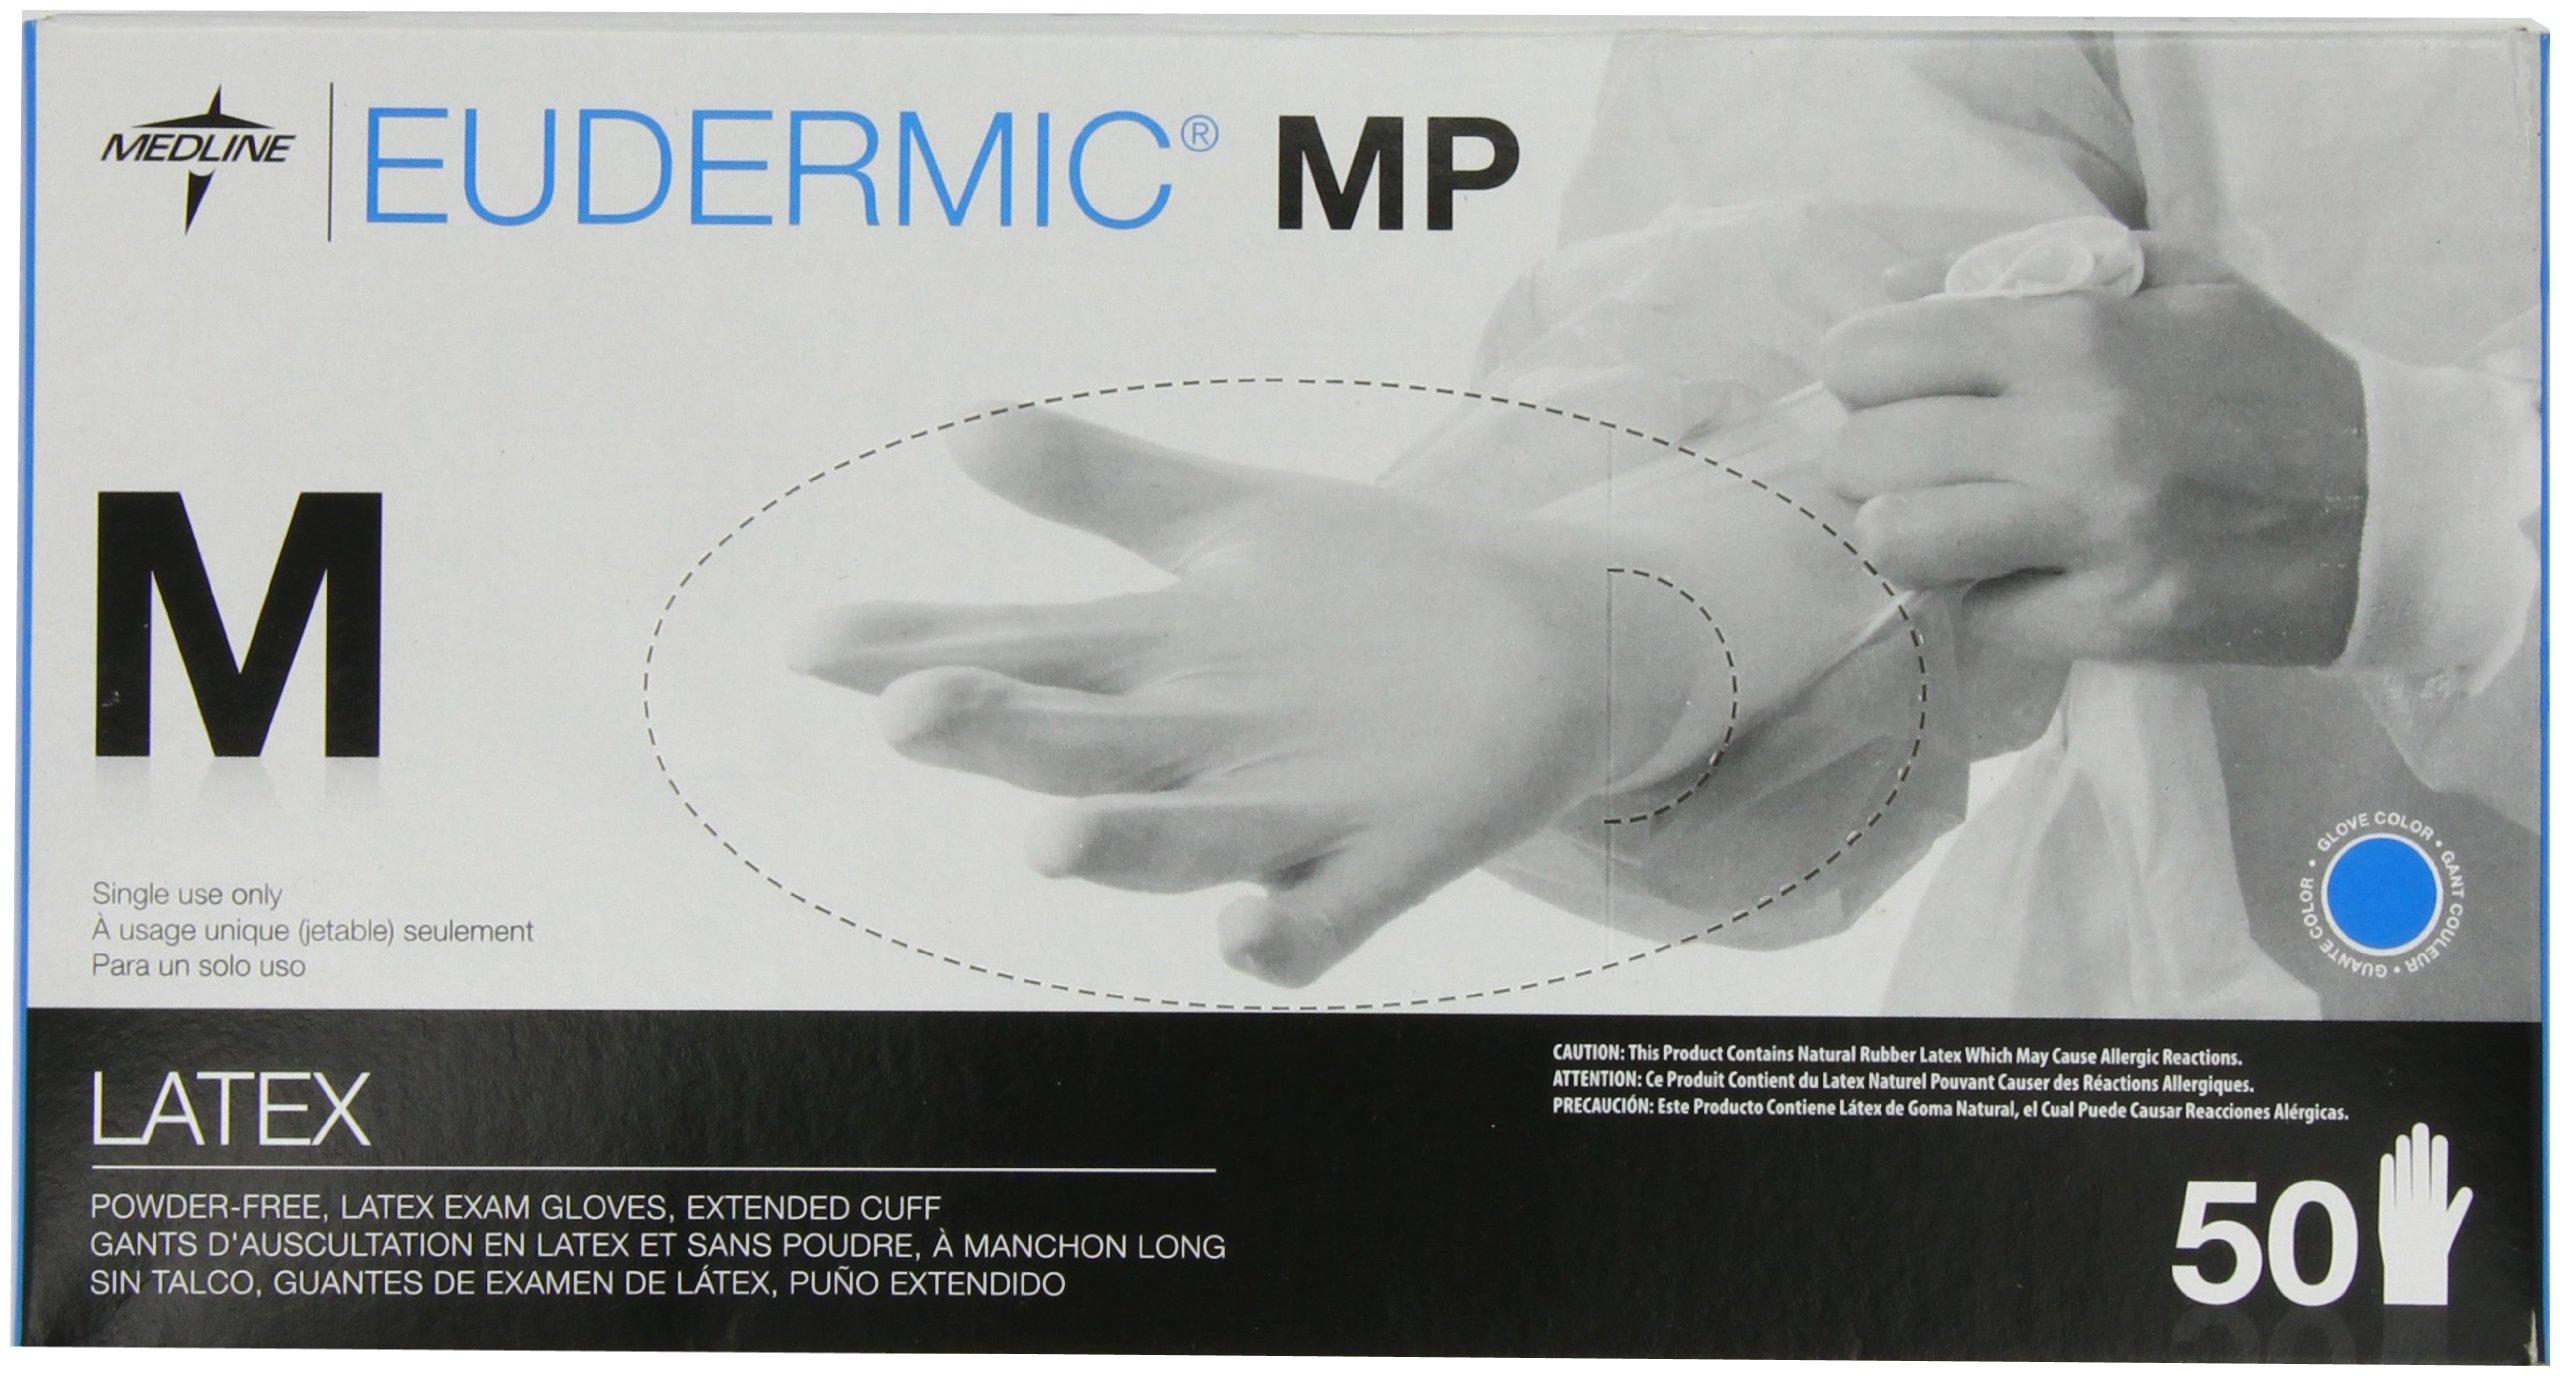 Medline Eudermic MP 12 Inches High Risk Exam Gloves, Medium, 50 Count